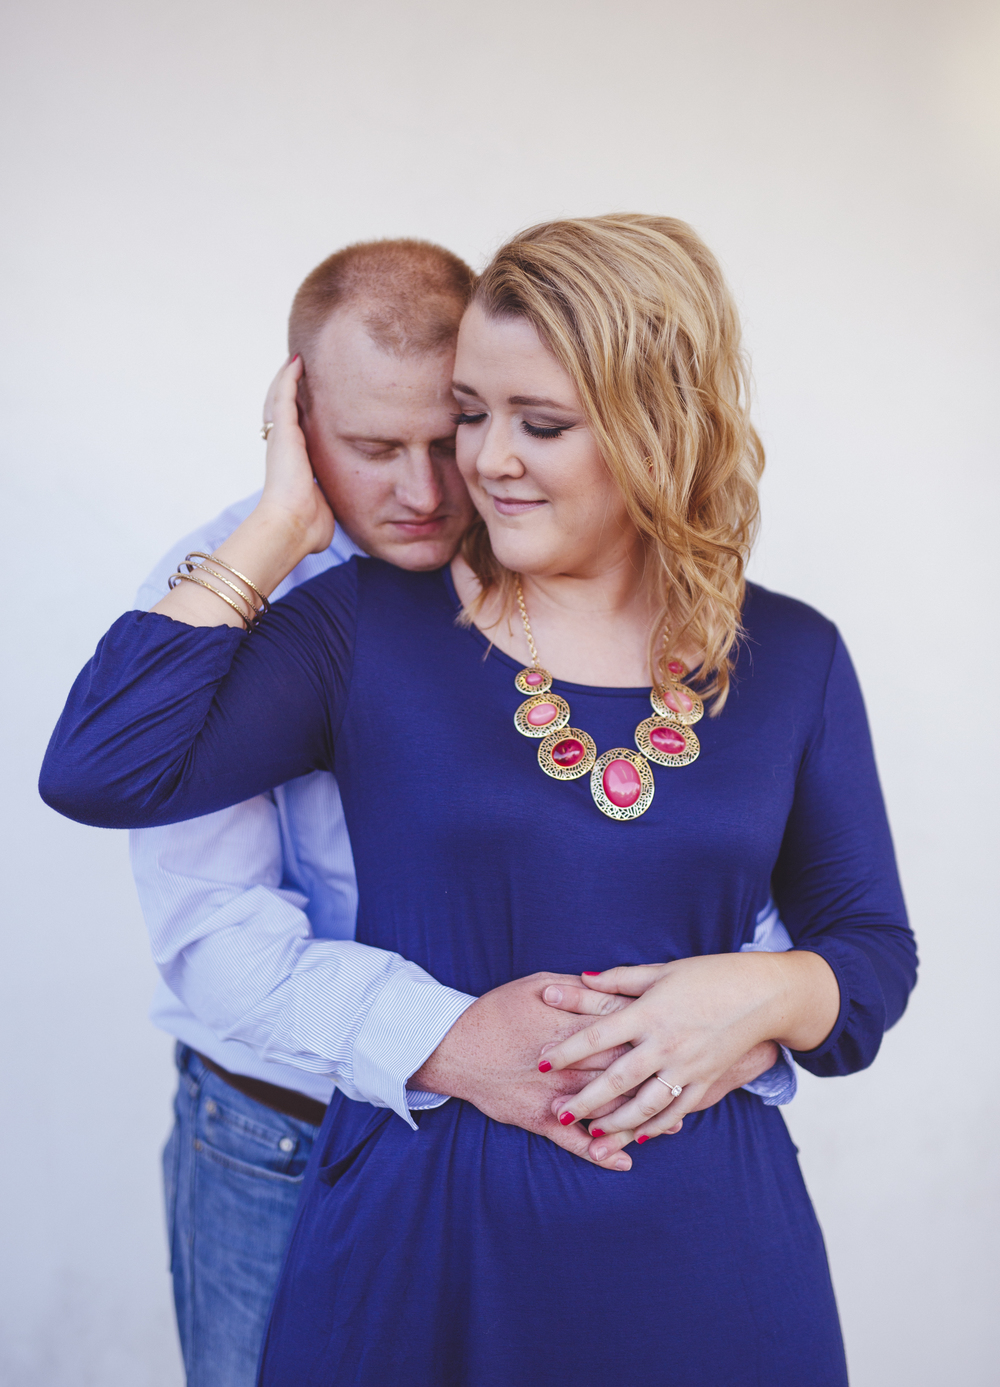 engagementshoot12729.jpg